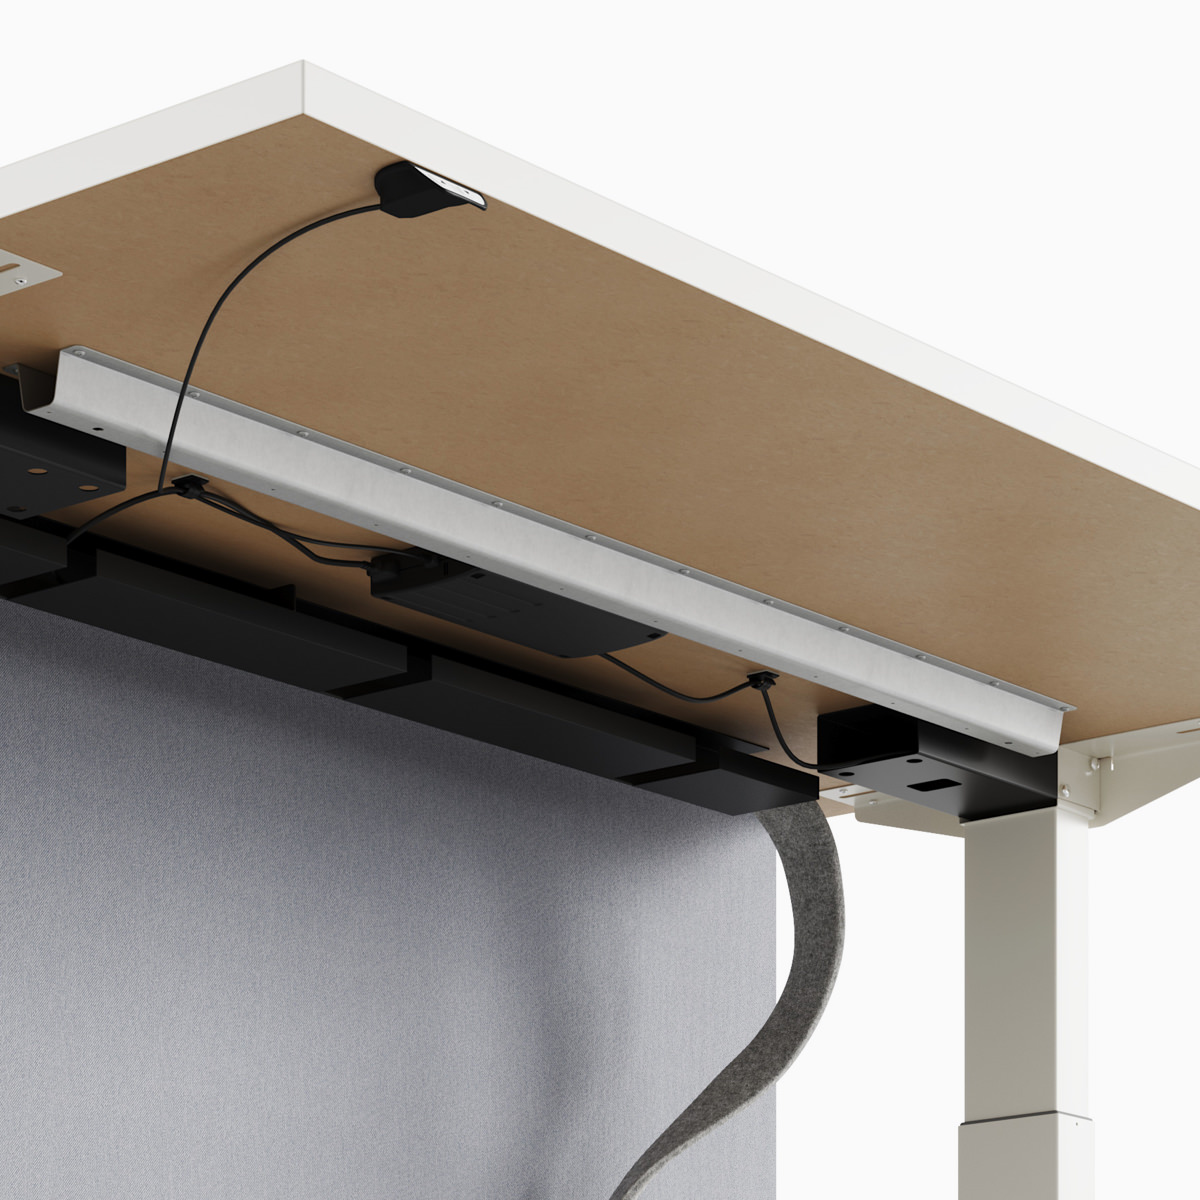 A close-up view of a Nevi Link standing desk system's under-surface cable management.